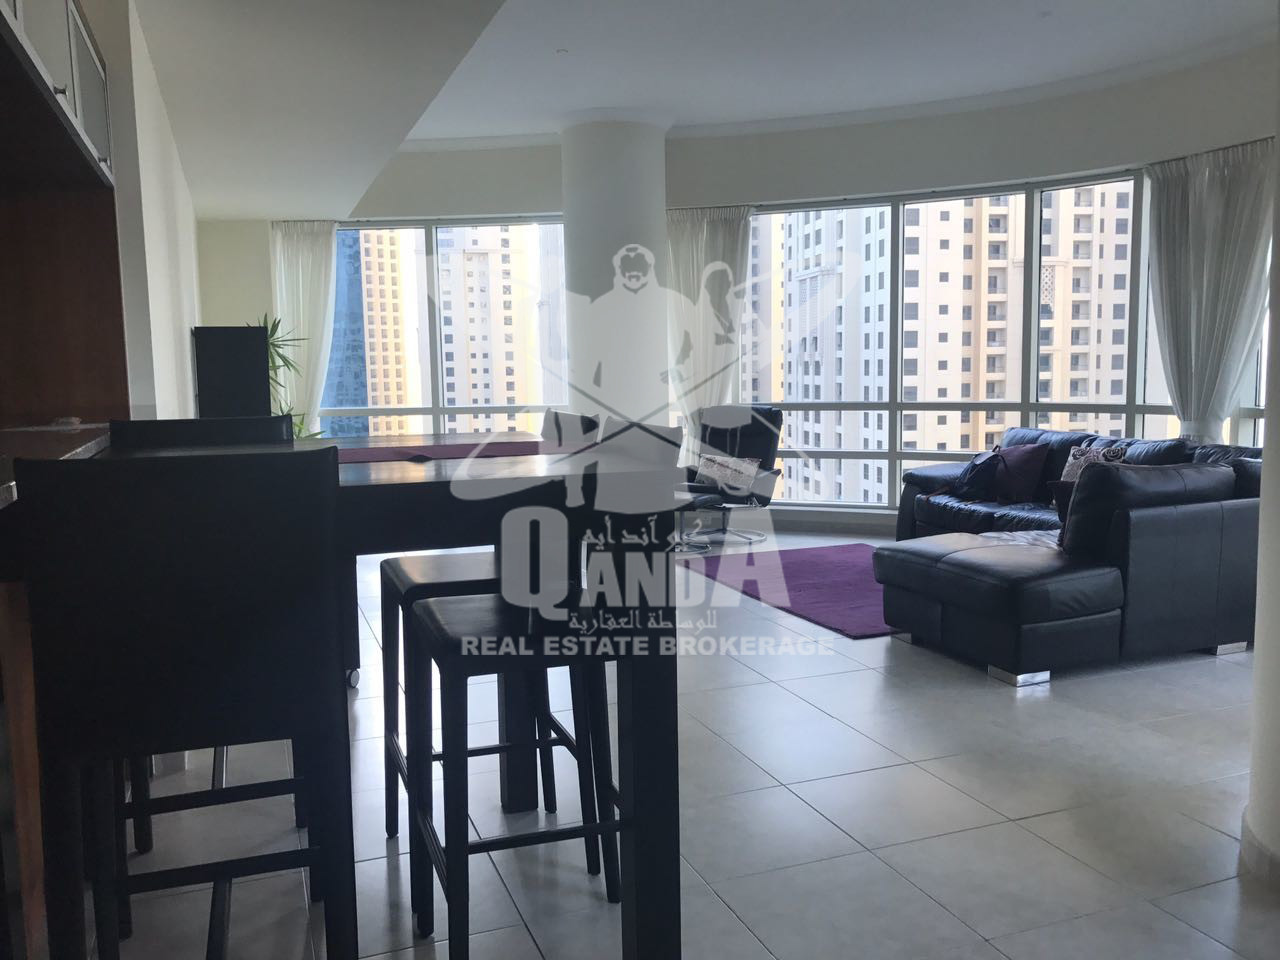 More than Better 2 Bedroom Apartment in Al Sahab 2 - Image 2